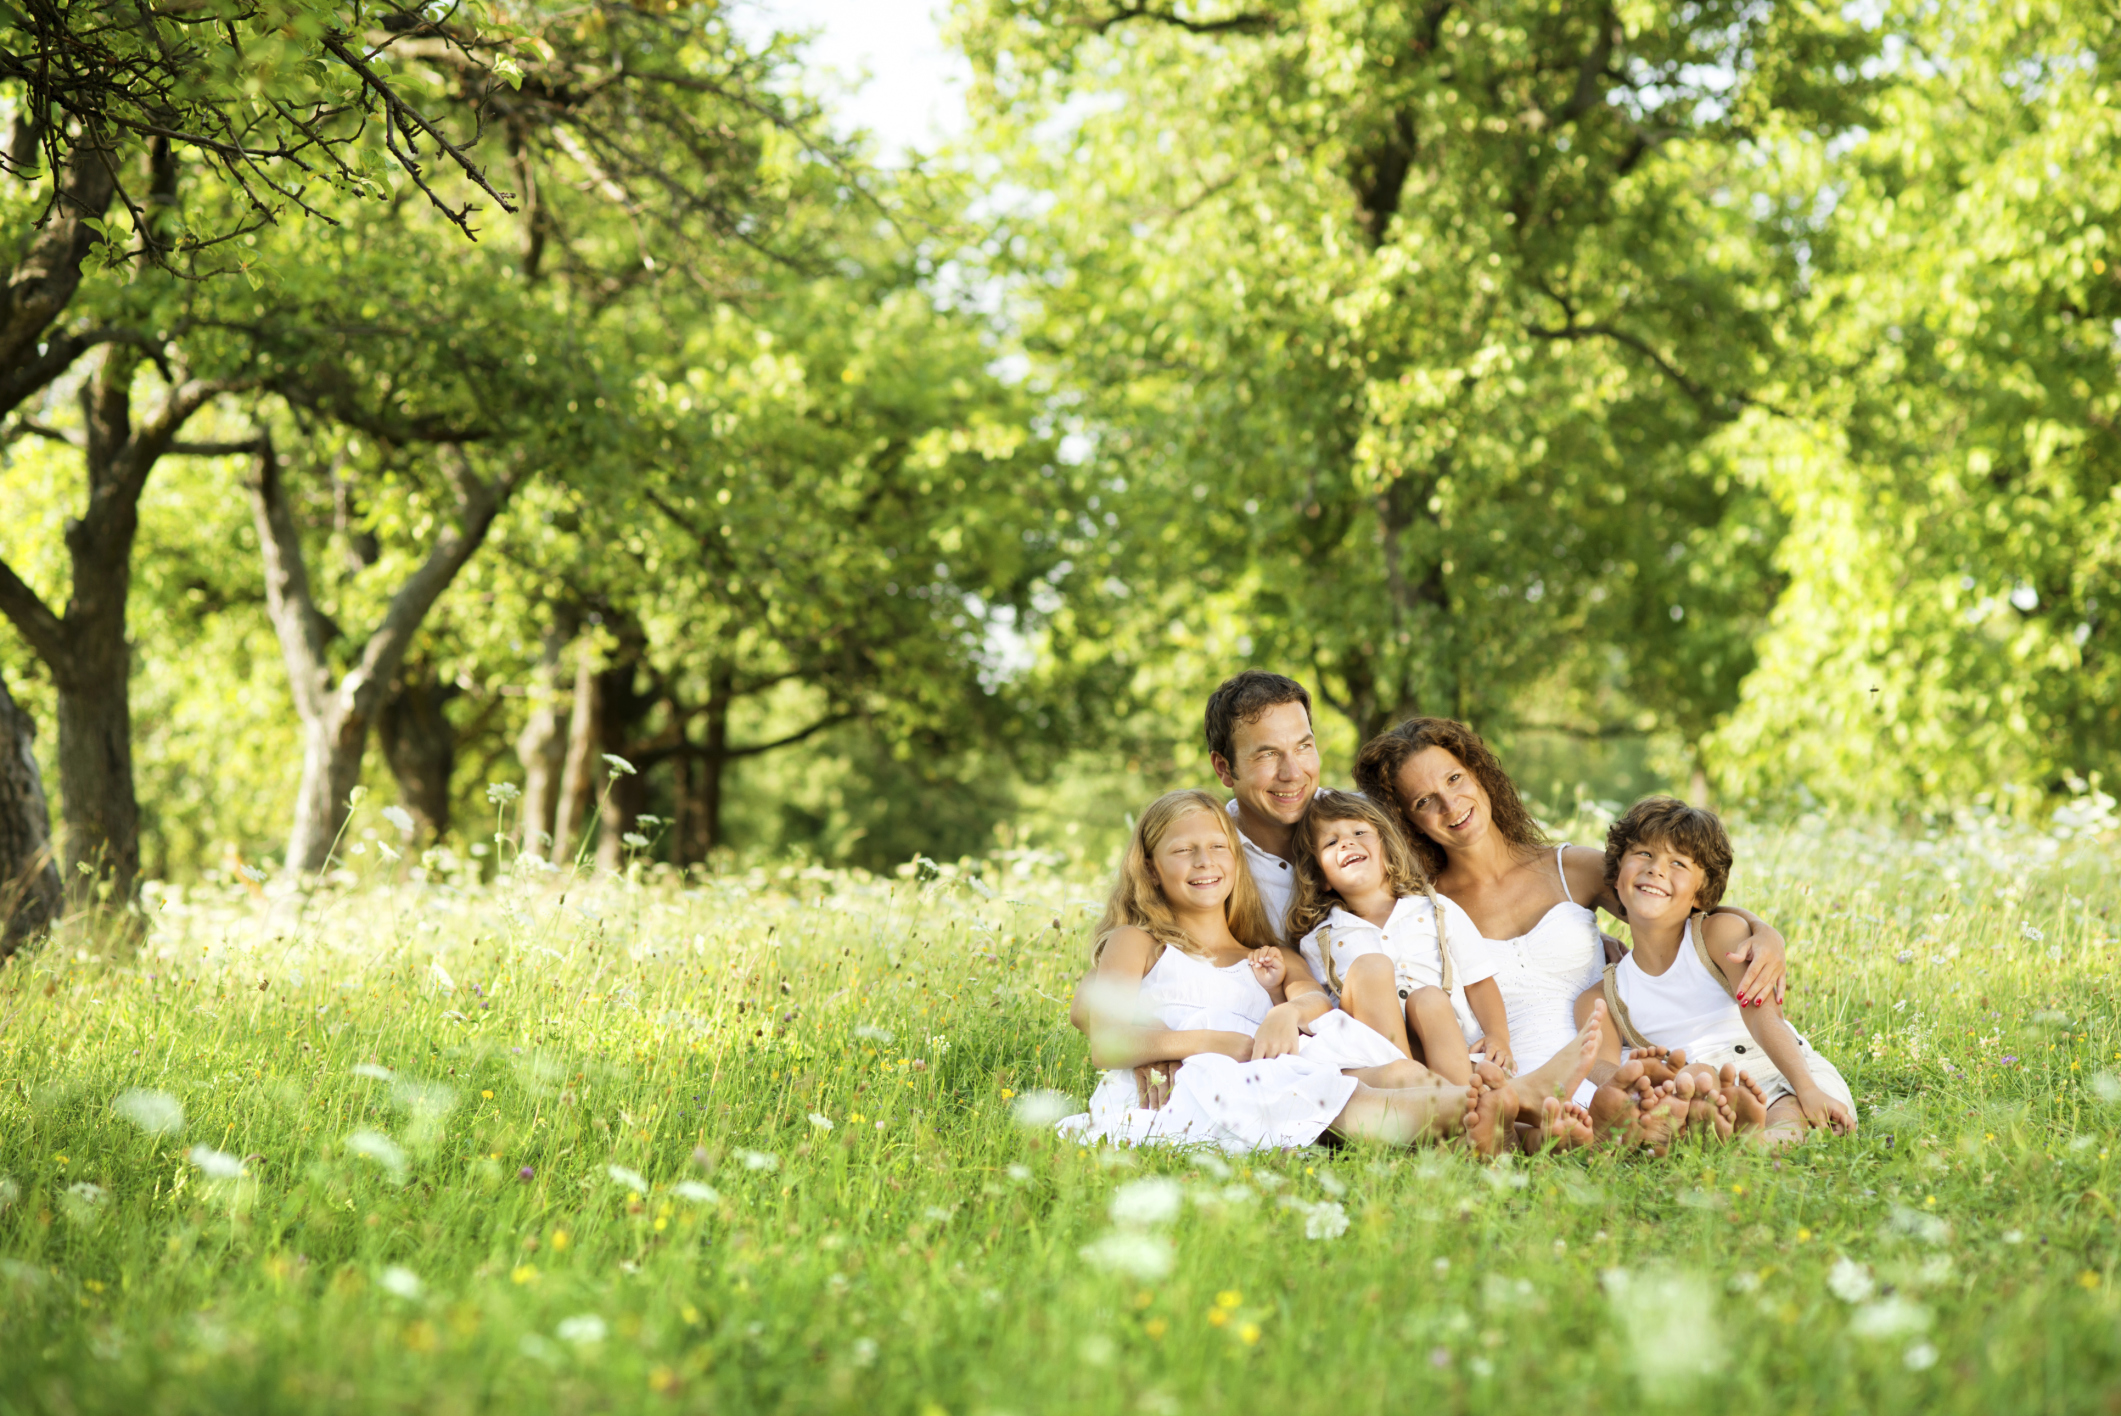 #1 Factor in Building a Successful Family